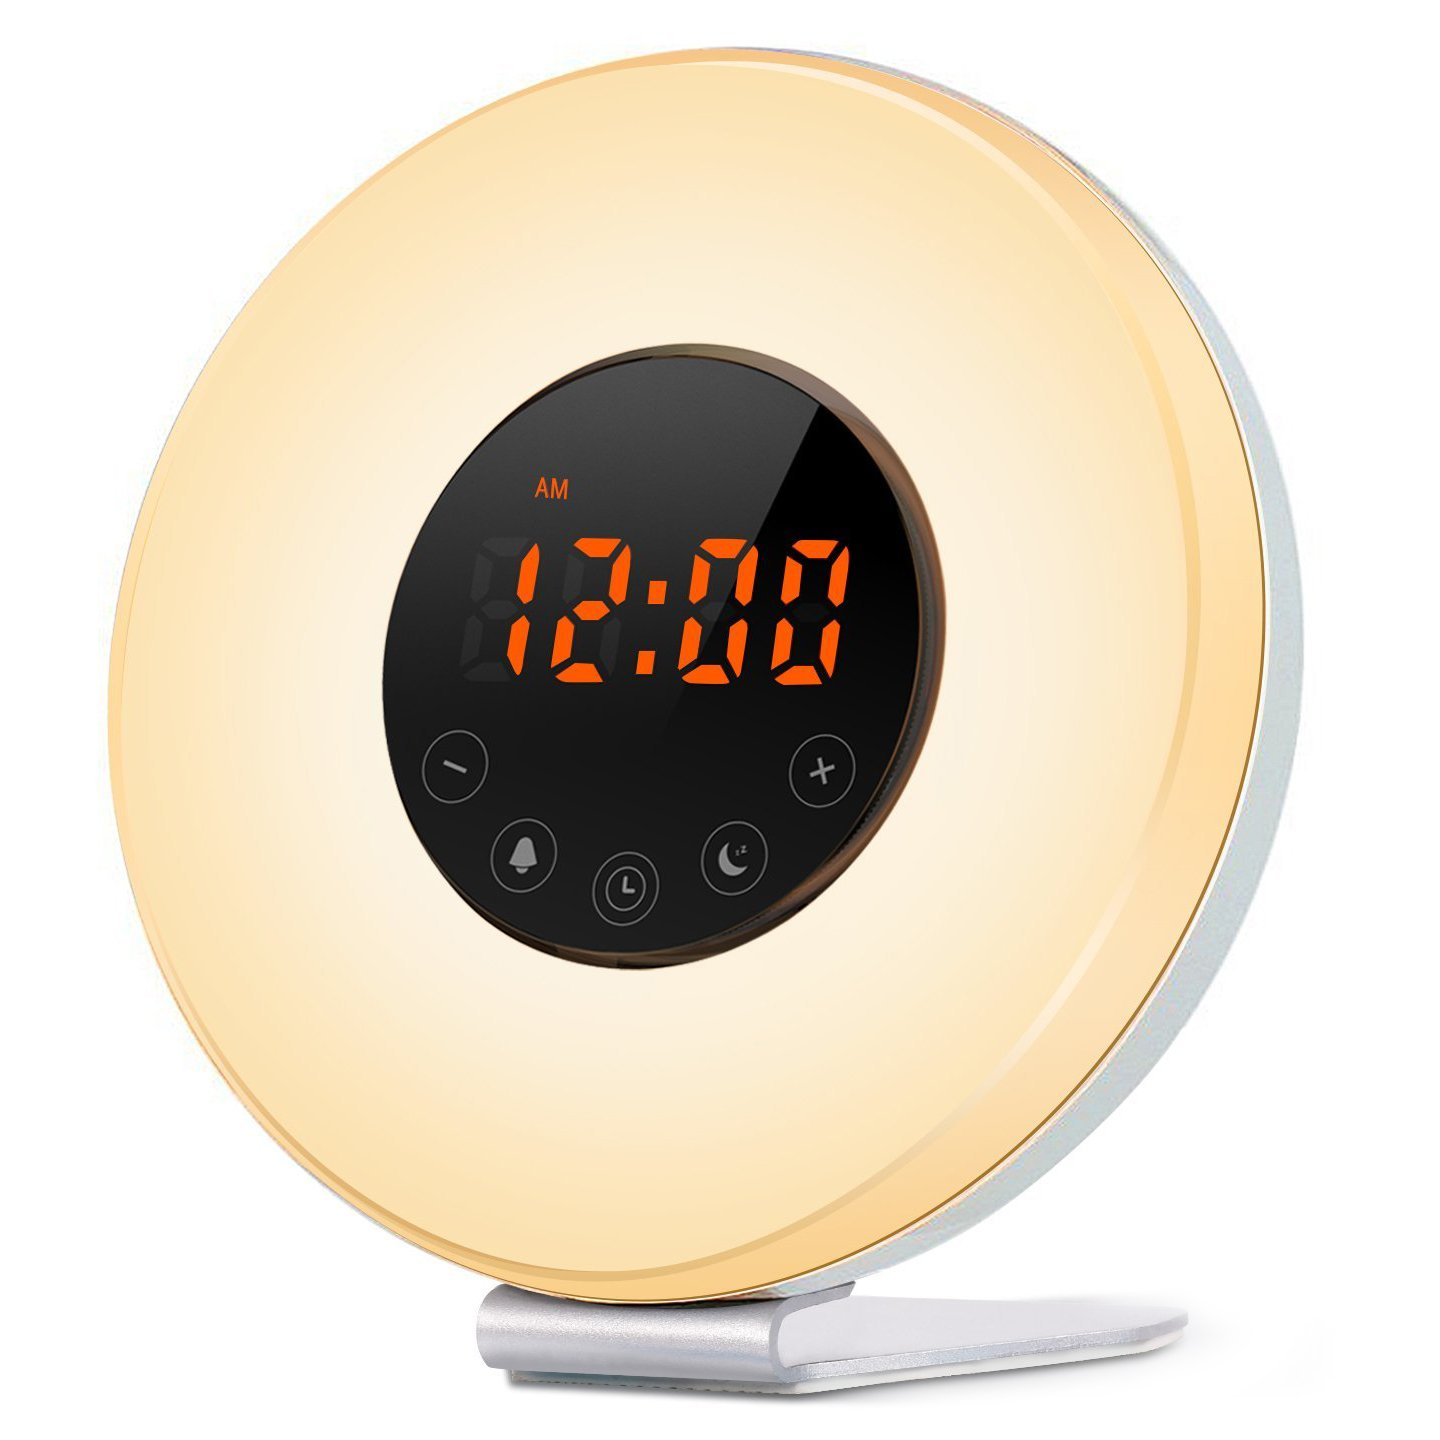 IREALIST Sunrise Simulation Wake-Up Light Digital Alarm Clock with 6 Natural Sounds, Optional RGB LED Night Lamp Brightness Customizable, FM Radio, Snooze Function product image